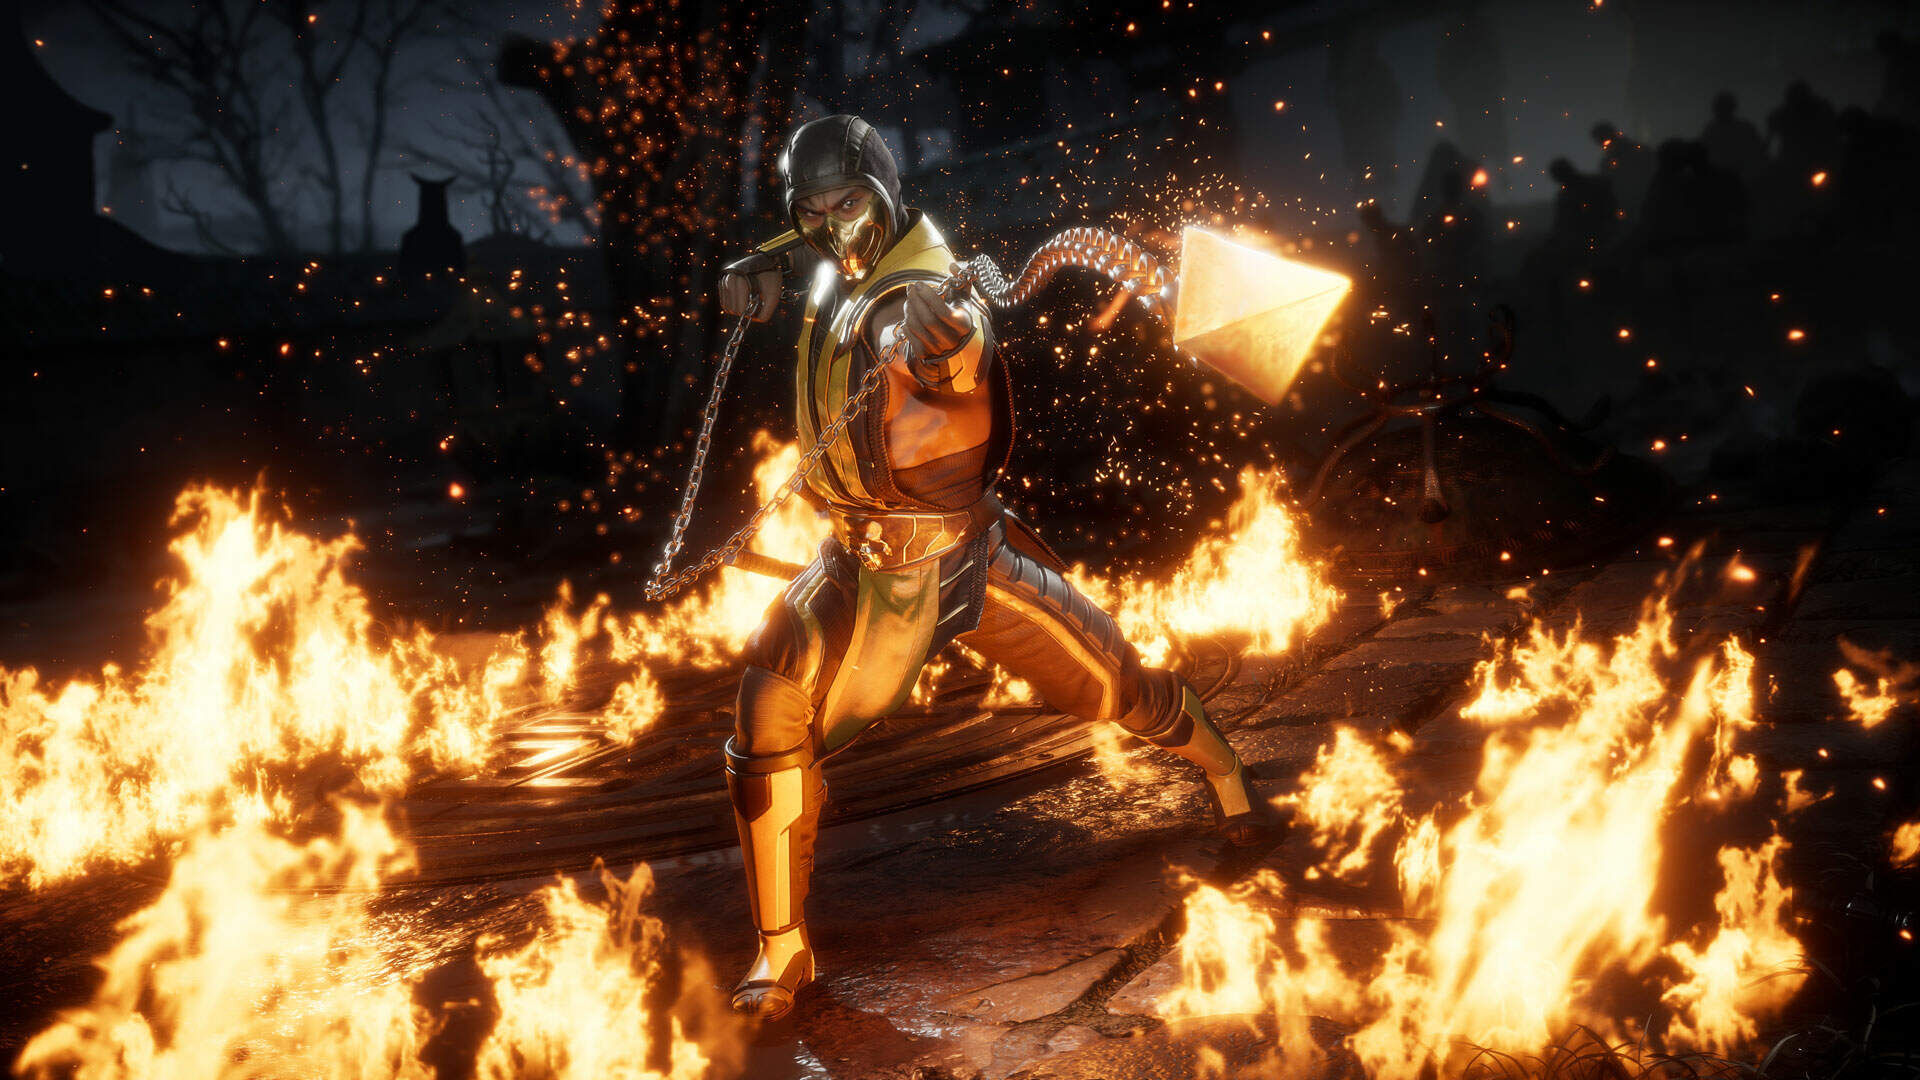 Mortal Kombat 11 Reveal Recap: New and Old Characters, Fatalities, and Ronda Rousey as Sonya Blade